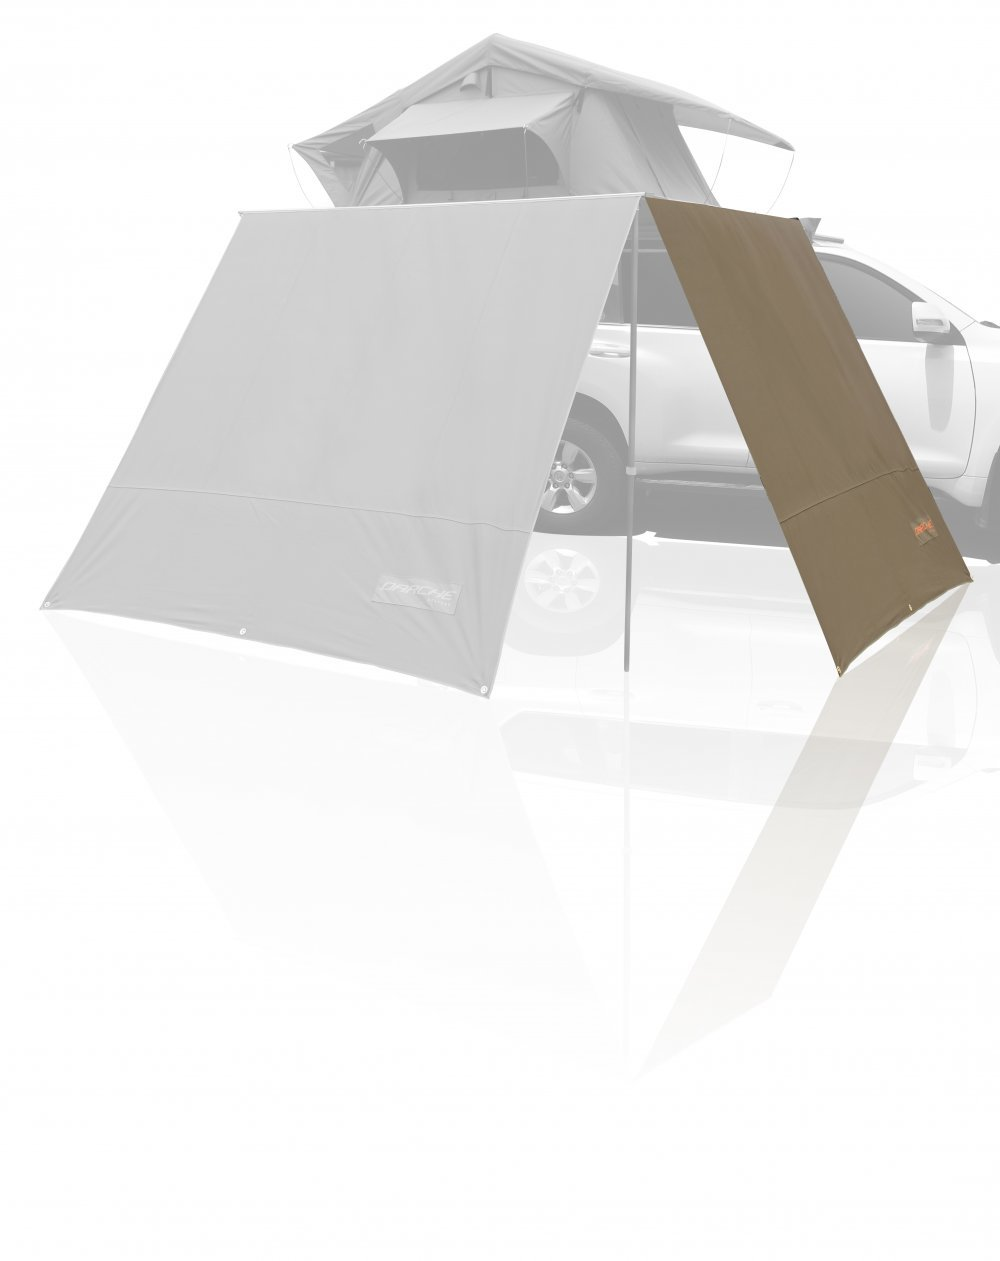 Eclipse Ezy Awning Side Extension (fits 2.5m extendable awning)